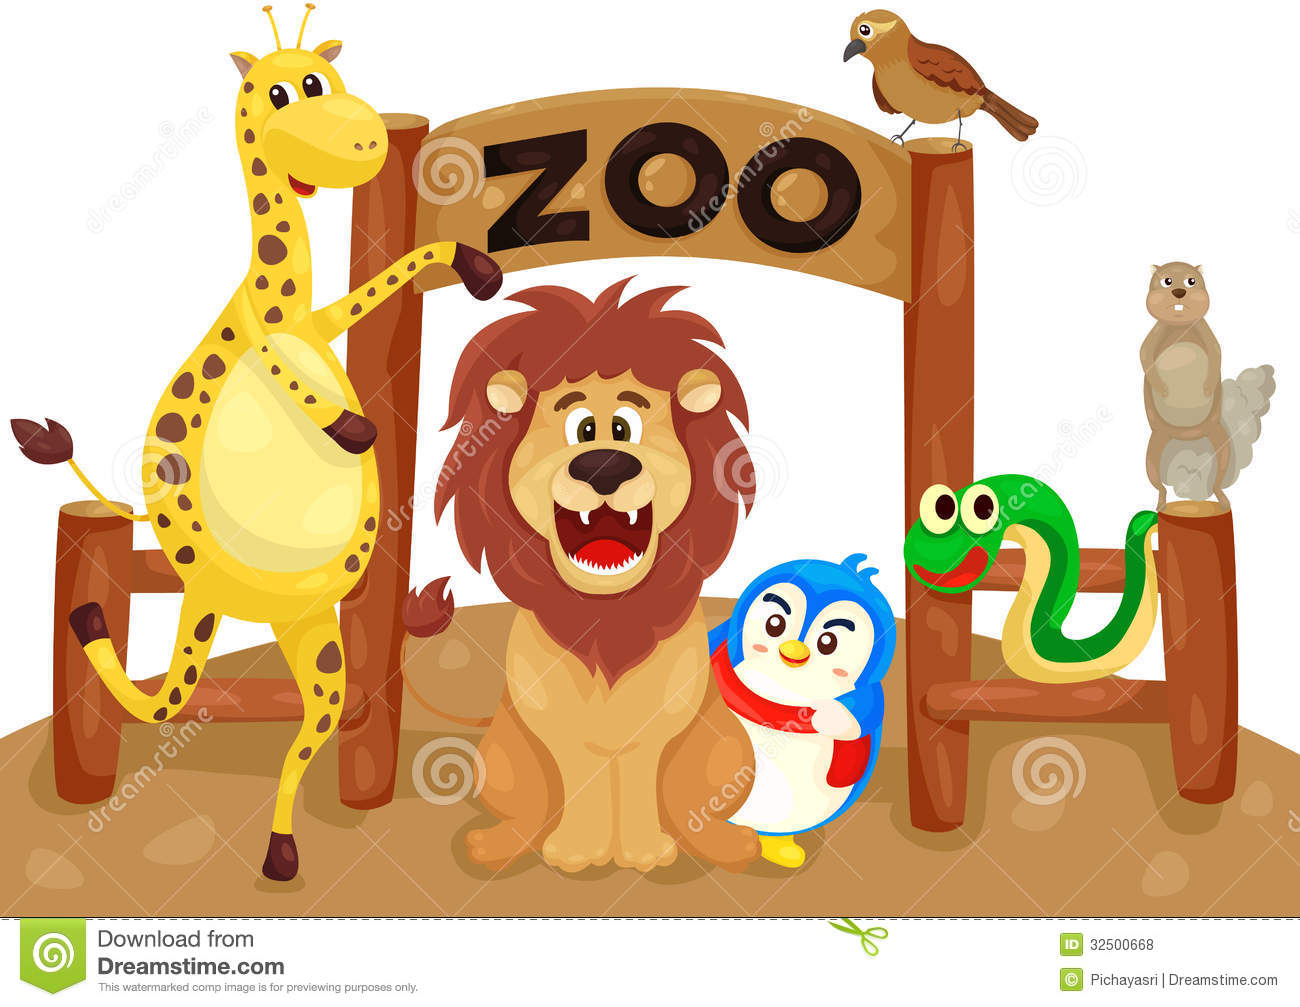 Zoo Sign Clipart Photos Good Pix Gallery-Zoo Sign Clipart Photos Good Pix Gallery-19